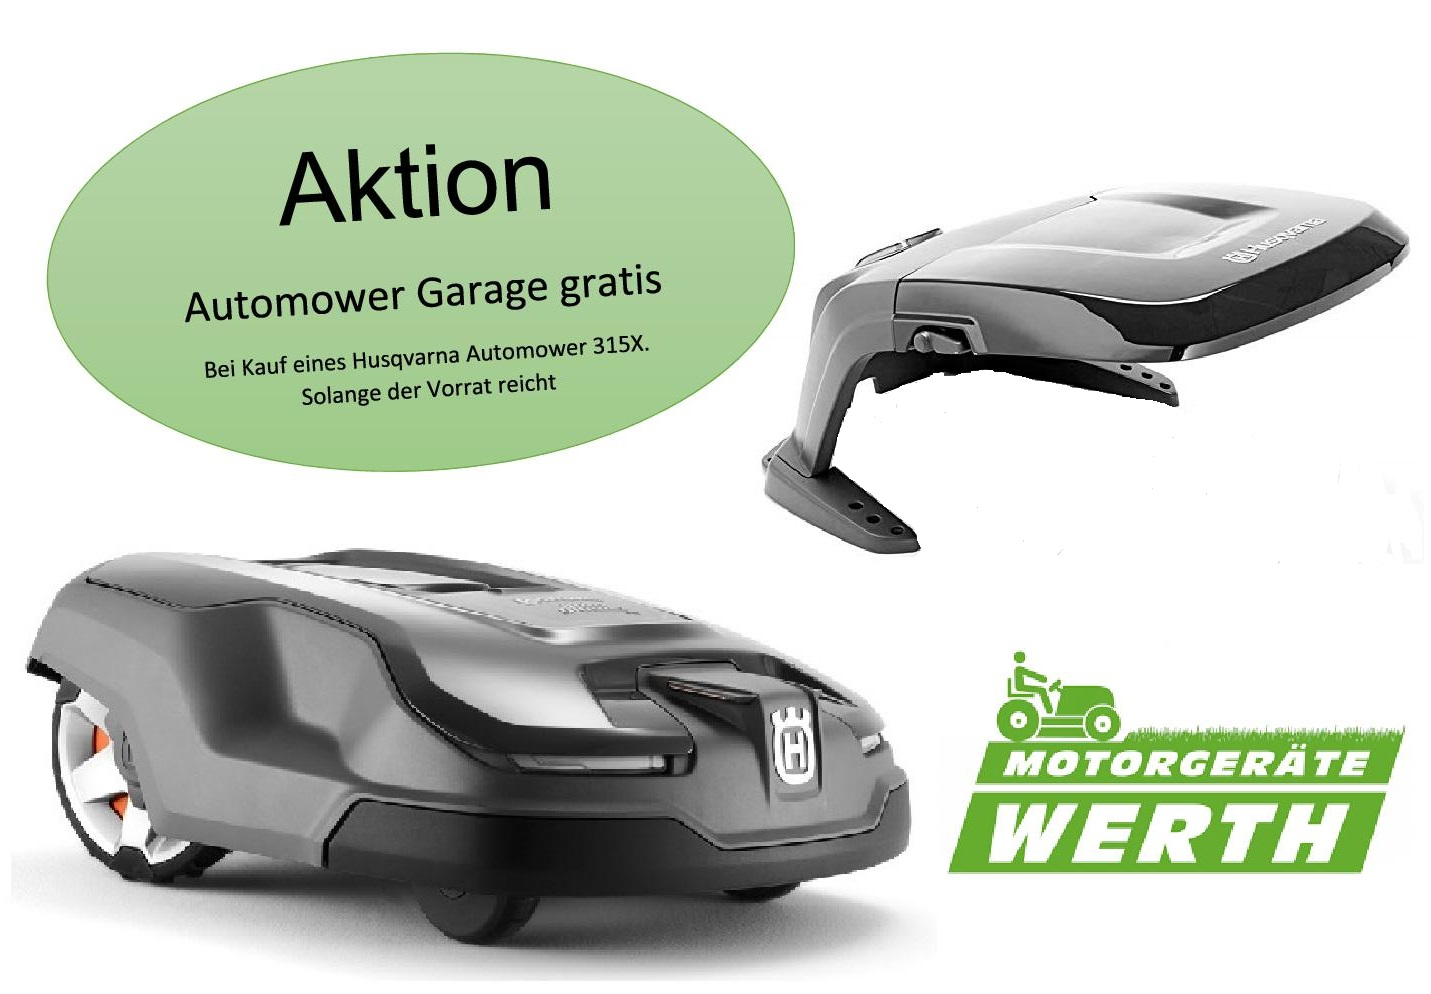 Husqvarna Automower 315X Aktion Garage gratis